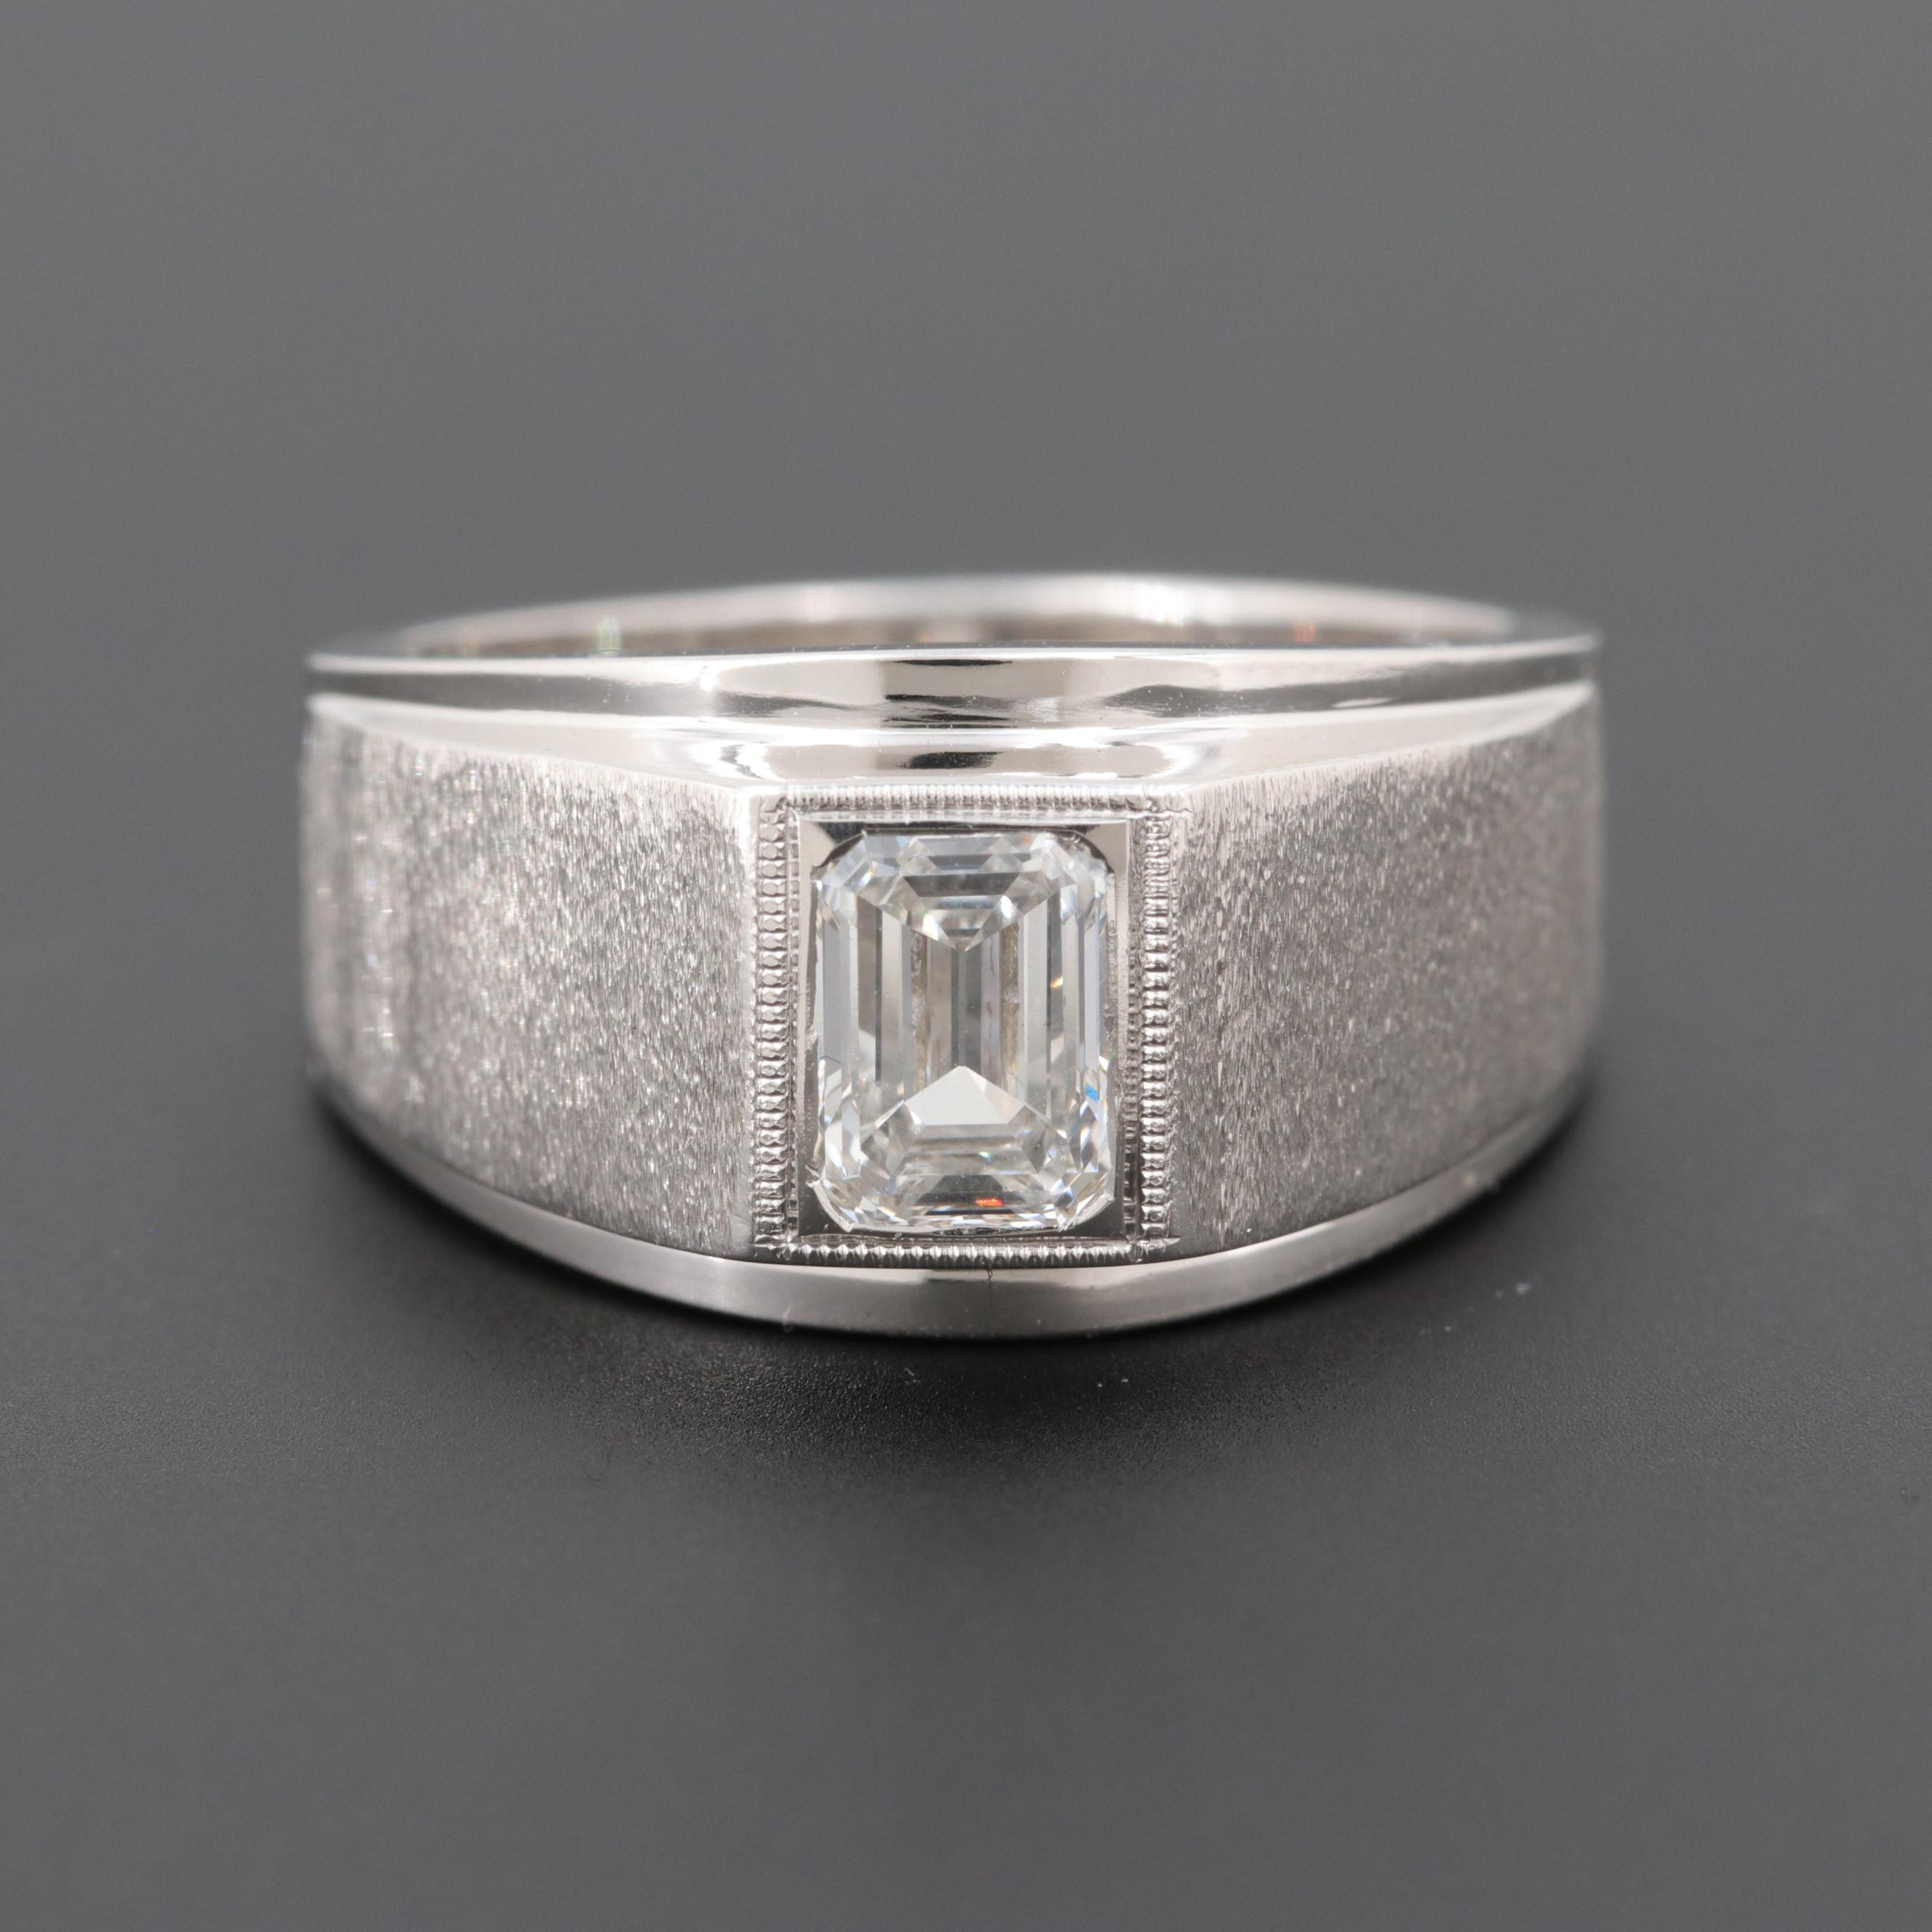 14K White Gold Diamond Ring with Florentine Finish Accents